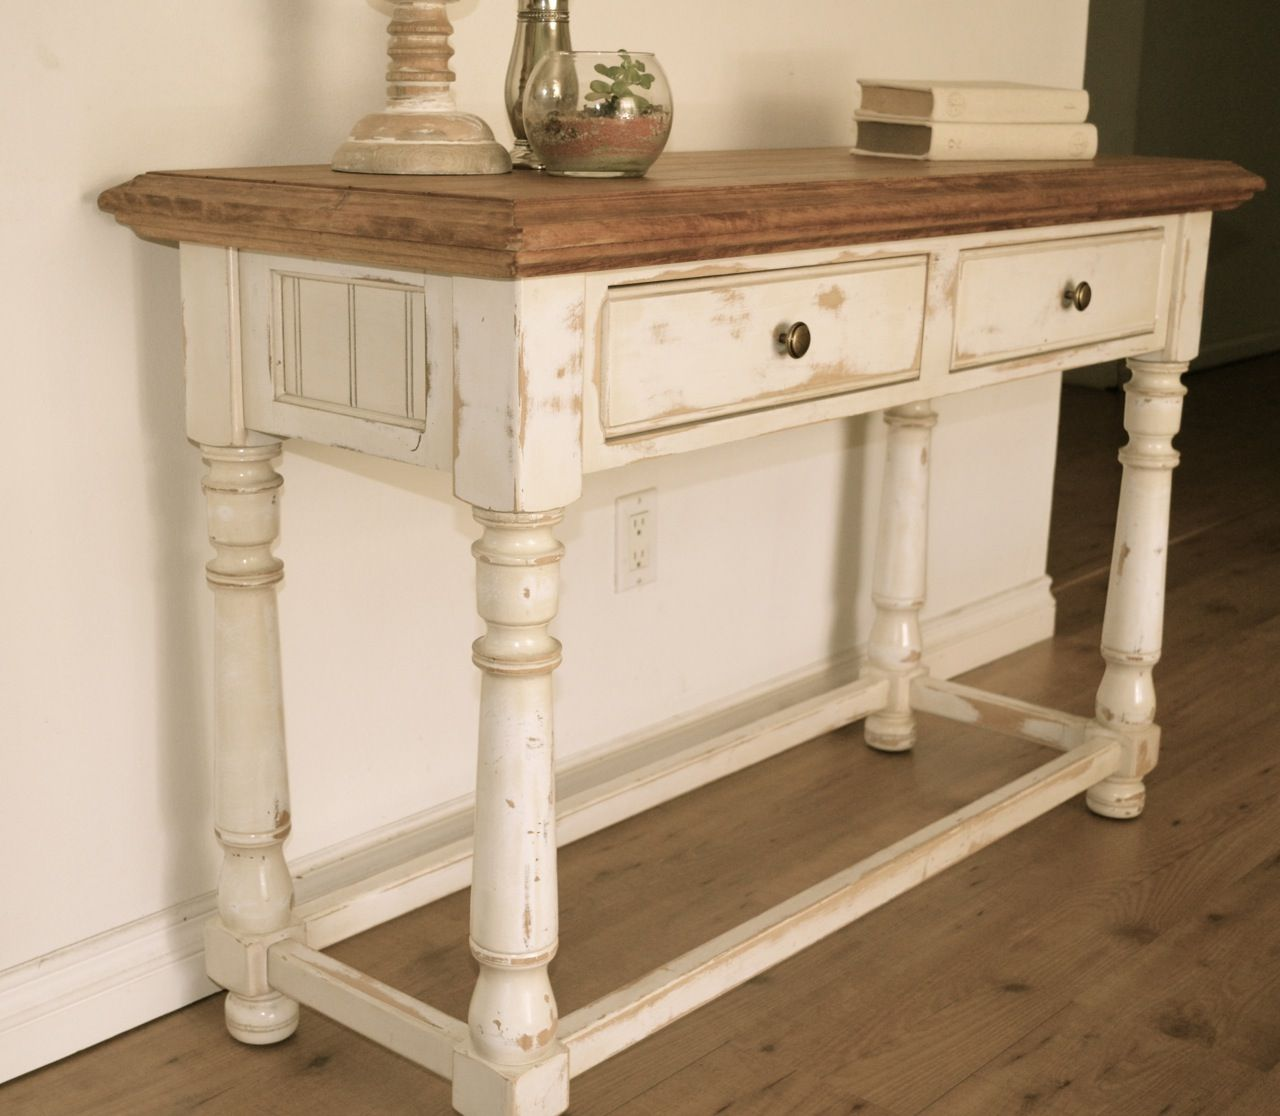 Farmhouse Style Console Table Distressed White Paint Light Stain On Top By Analia Pasto Farmhouse Console Table White Console Table Wood Dining Table Rustic